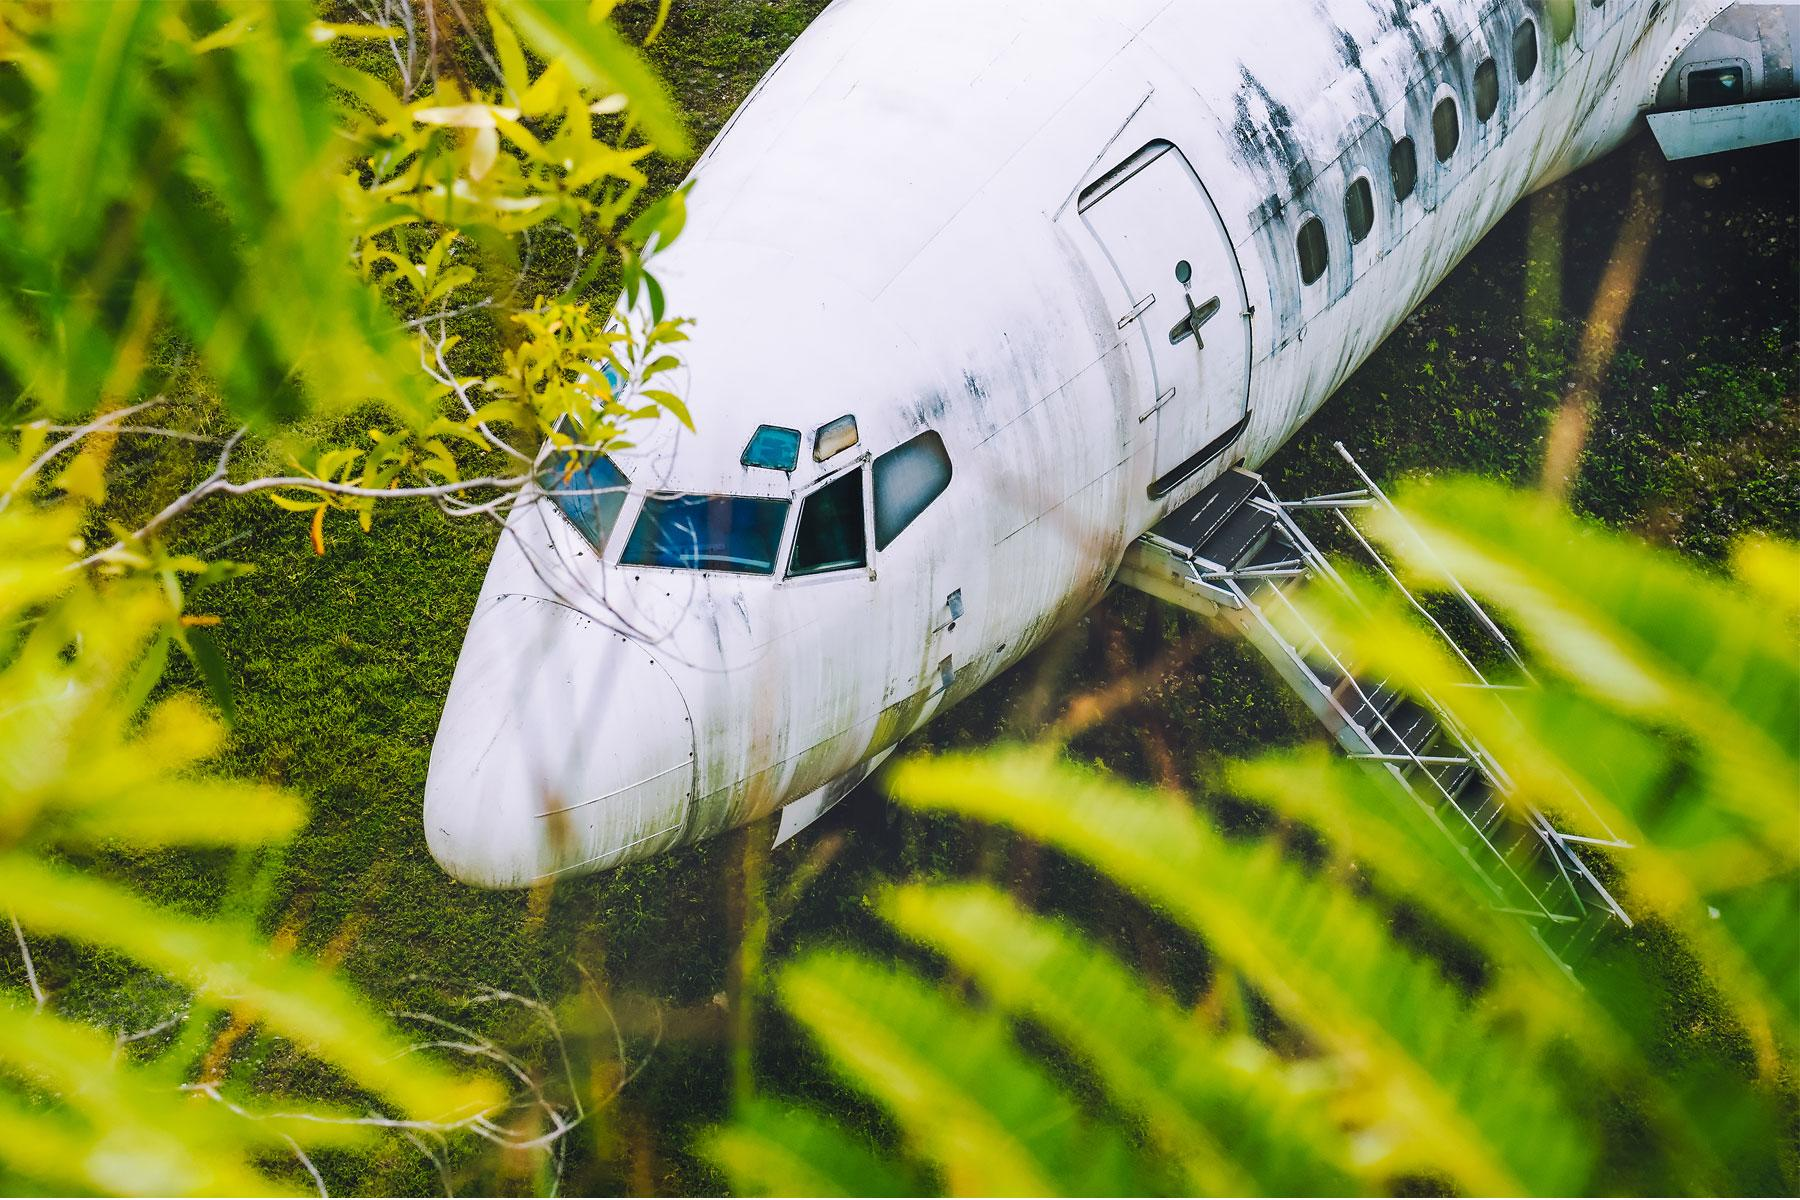 The Abandoned Planes in Bali Are Bizarre Tourist Attractions